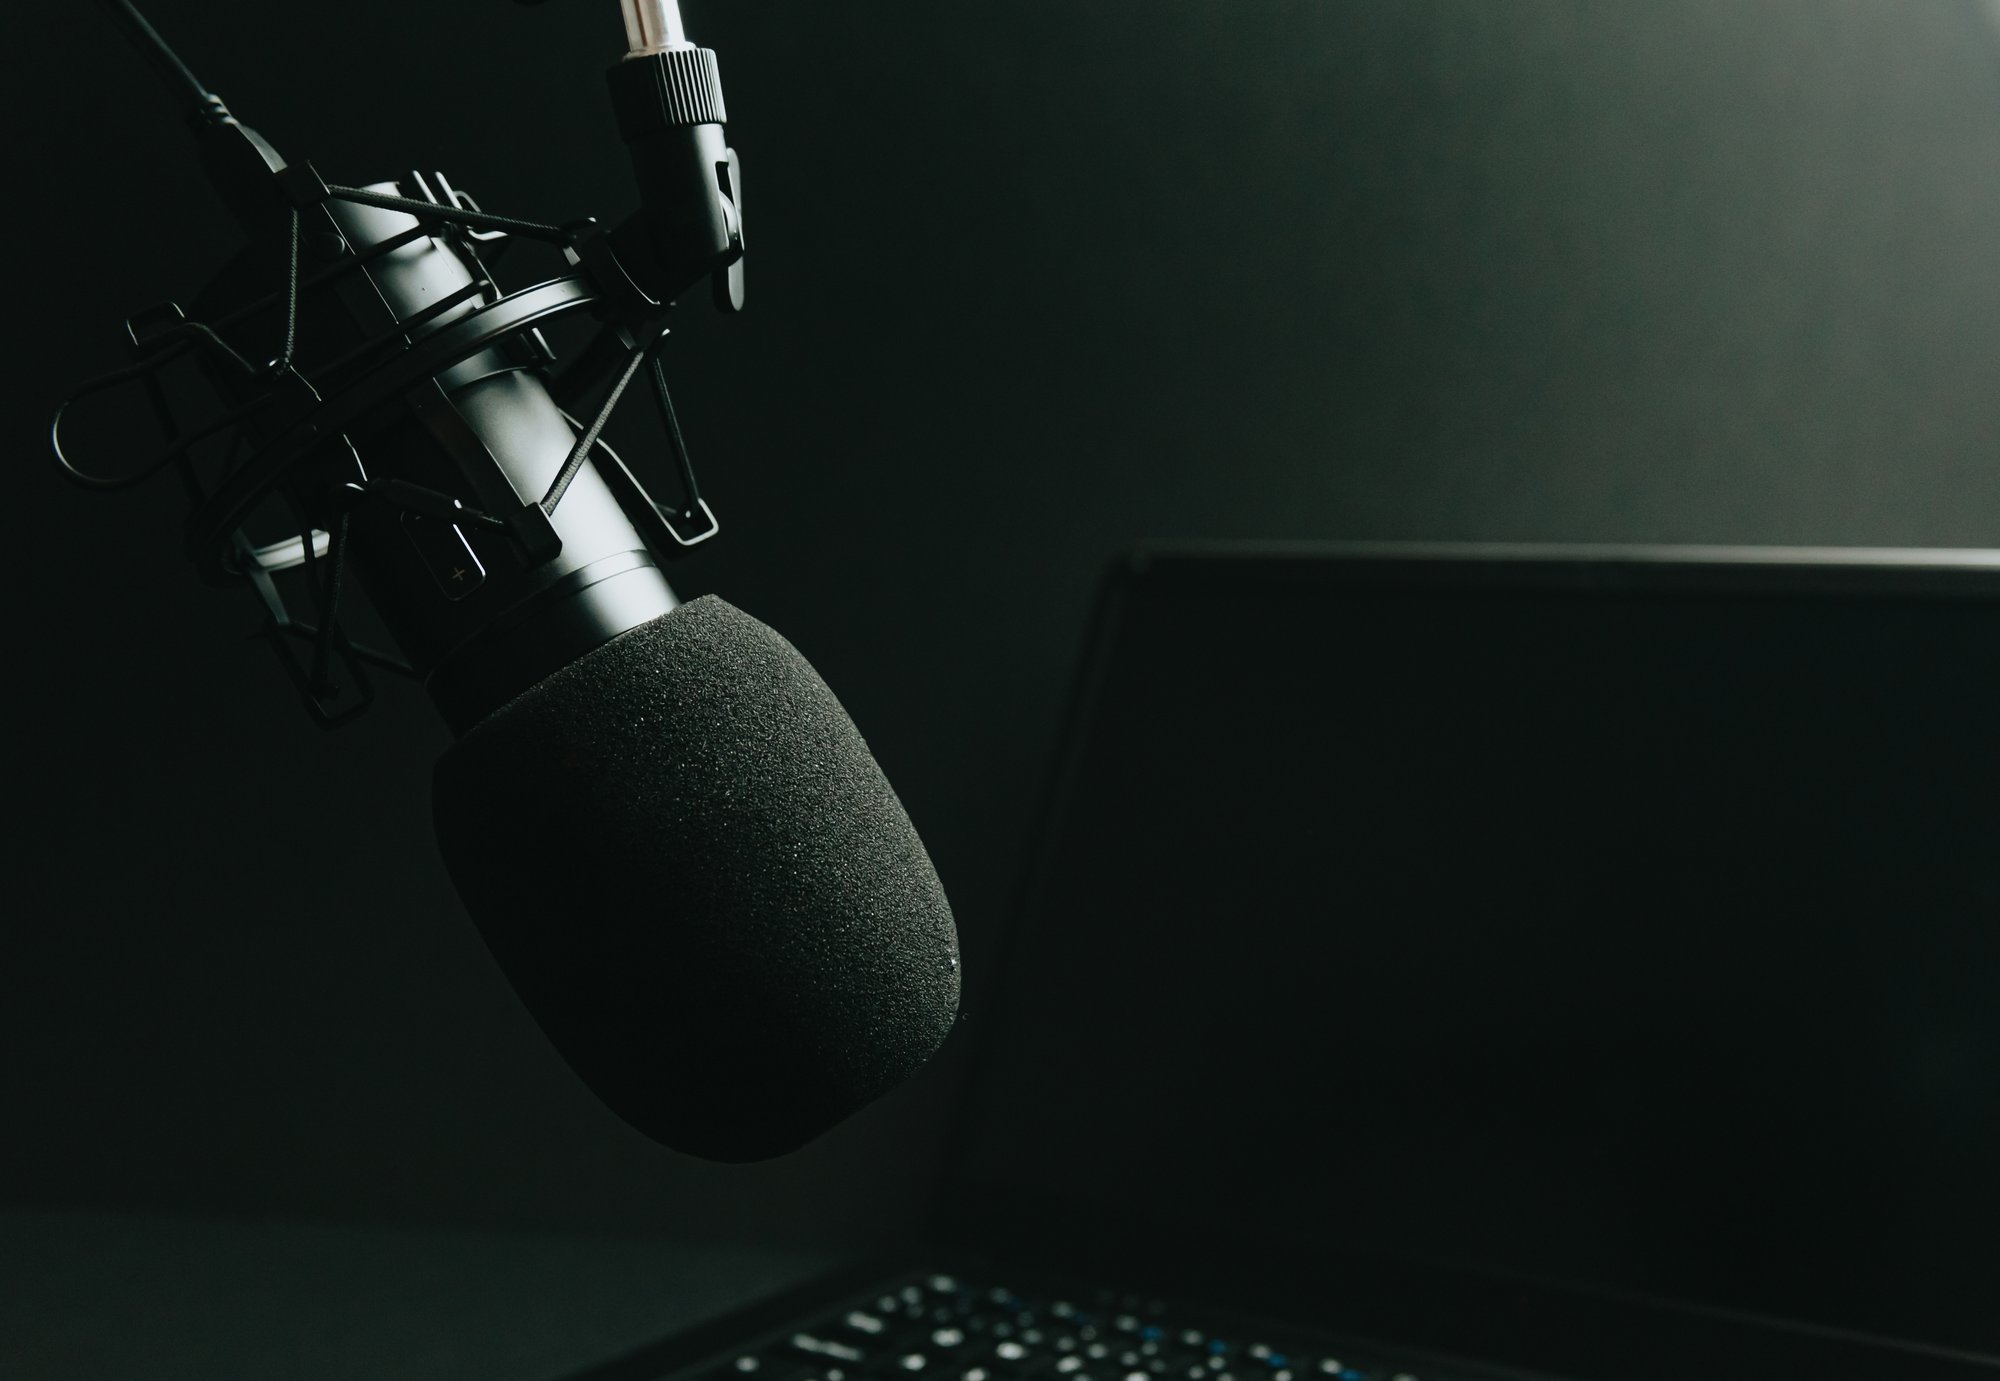 microphone on a stand and laptop in monochrome 台上麦克风和单色笔记本电脑